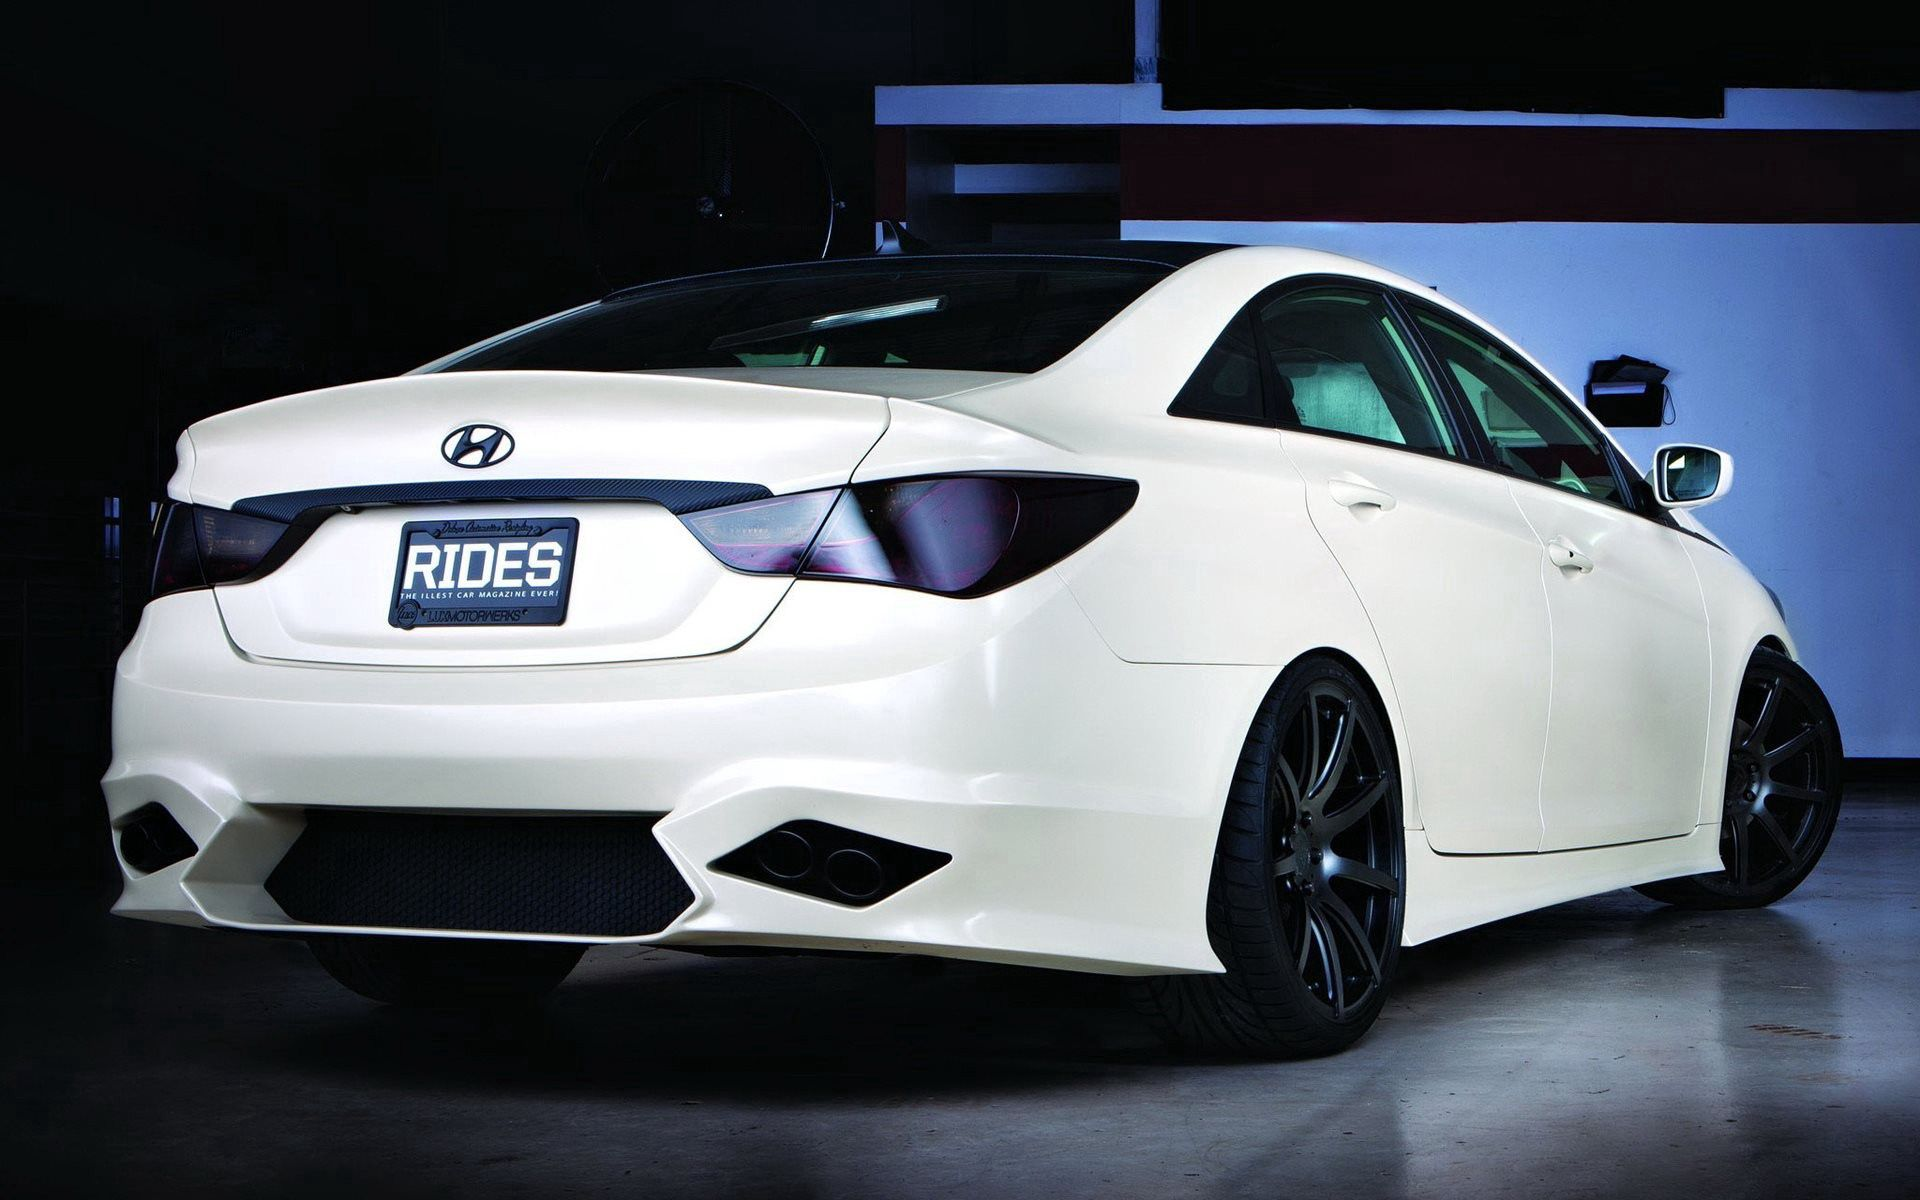 135925 download wallpaper Hyundai, Cars, Back View, Rear View, Sonata screensavers and pictures for free